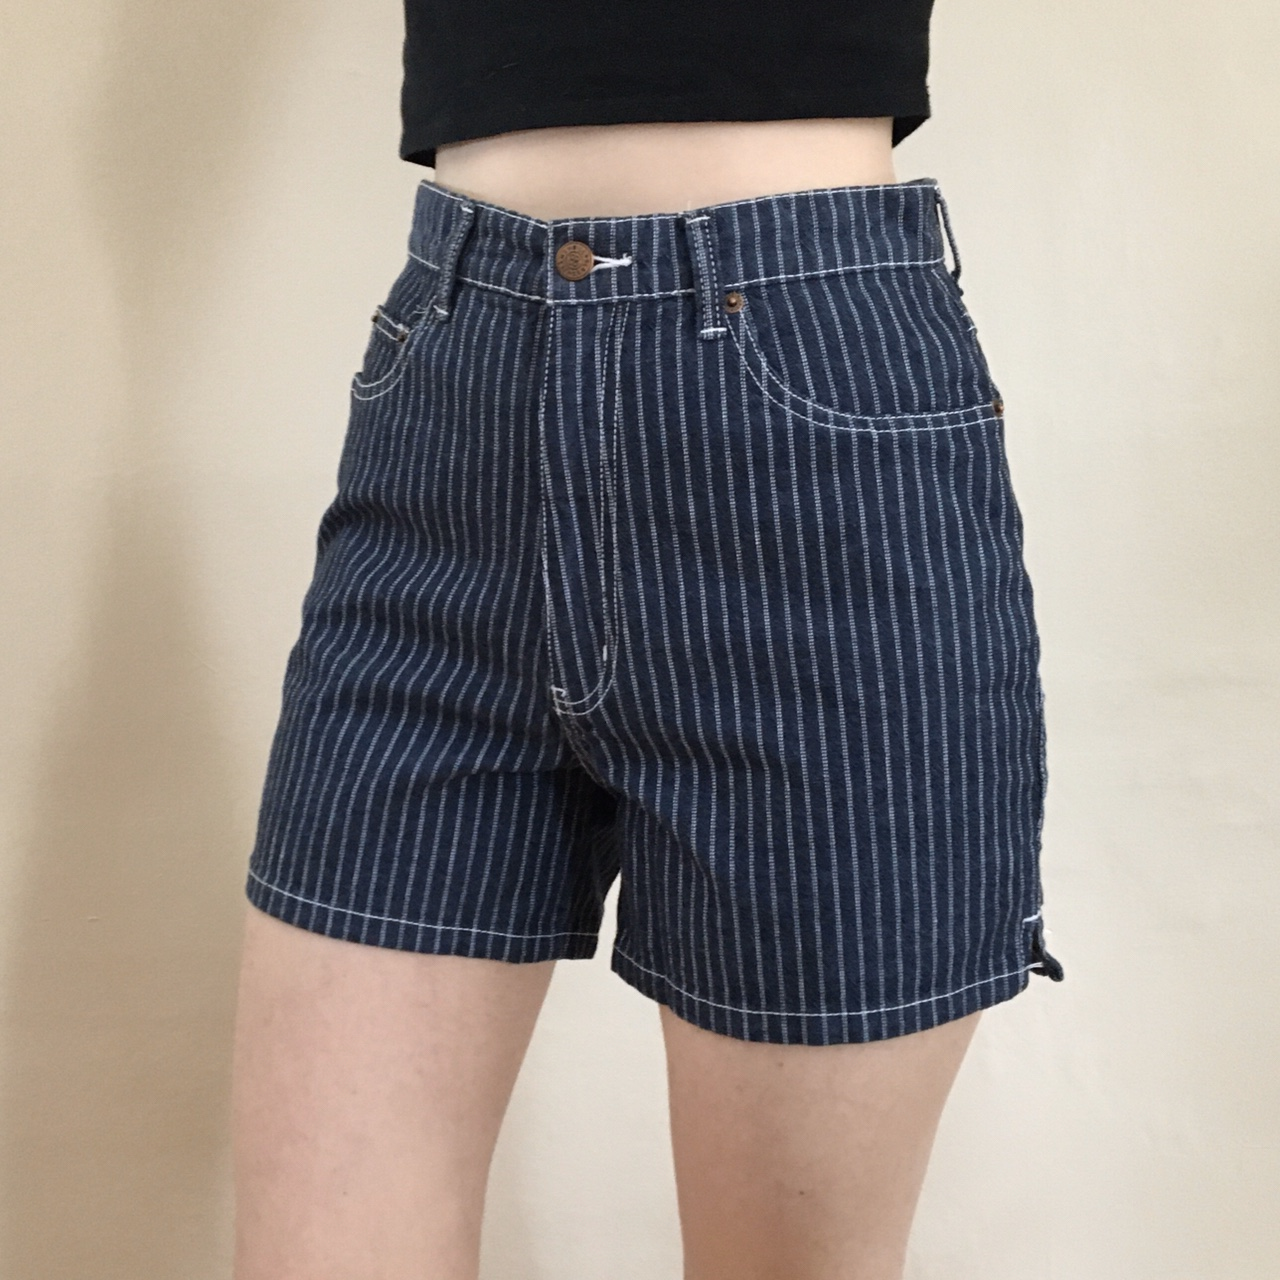 Vintage 80s High Waisted Striped Shorts